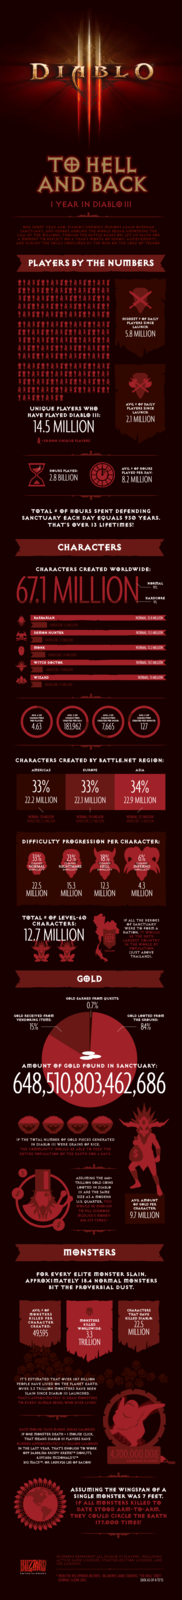 Diablo III Anniversary Facts